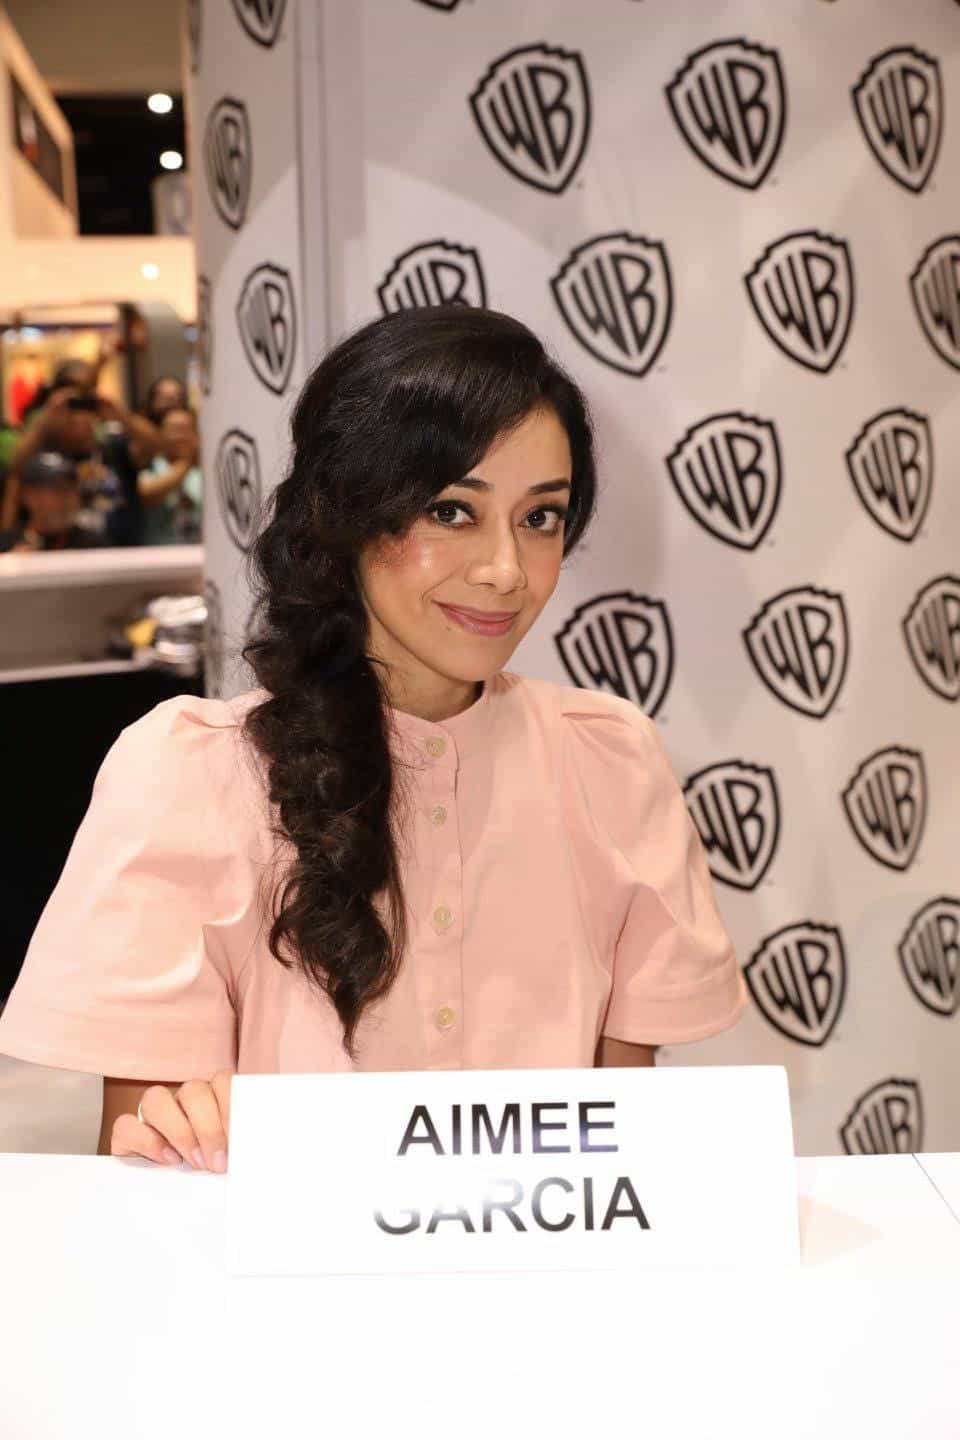 LUCIFER star Aimee Garcia enjoys her time at the Warner Bros. booth at Comic-Con 2017 on Saturday, July 22. #WBSDCC (© 2017 WBEI. All Rights Reserved)